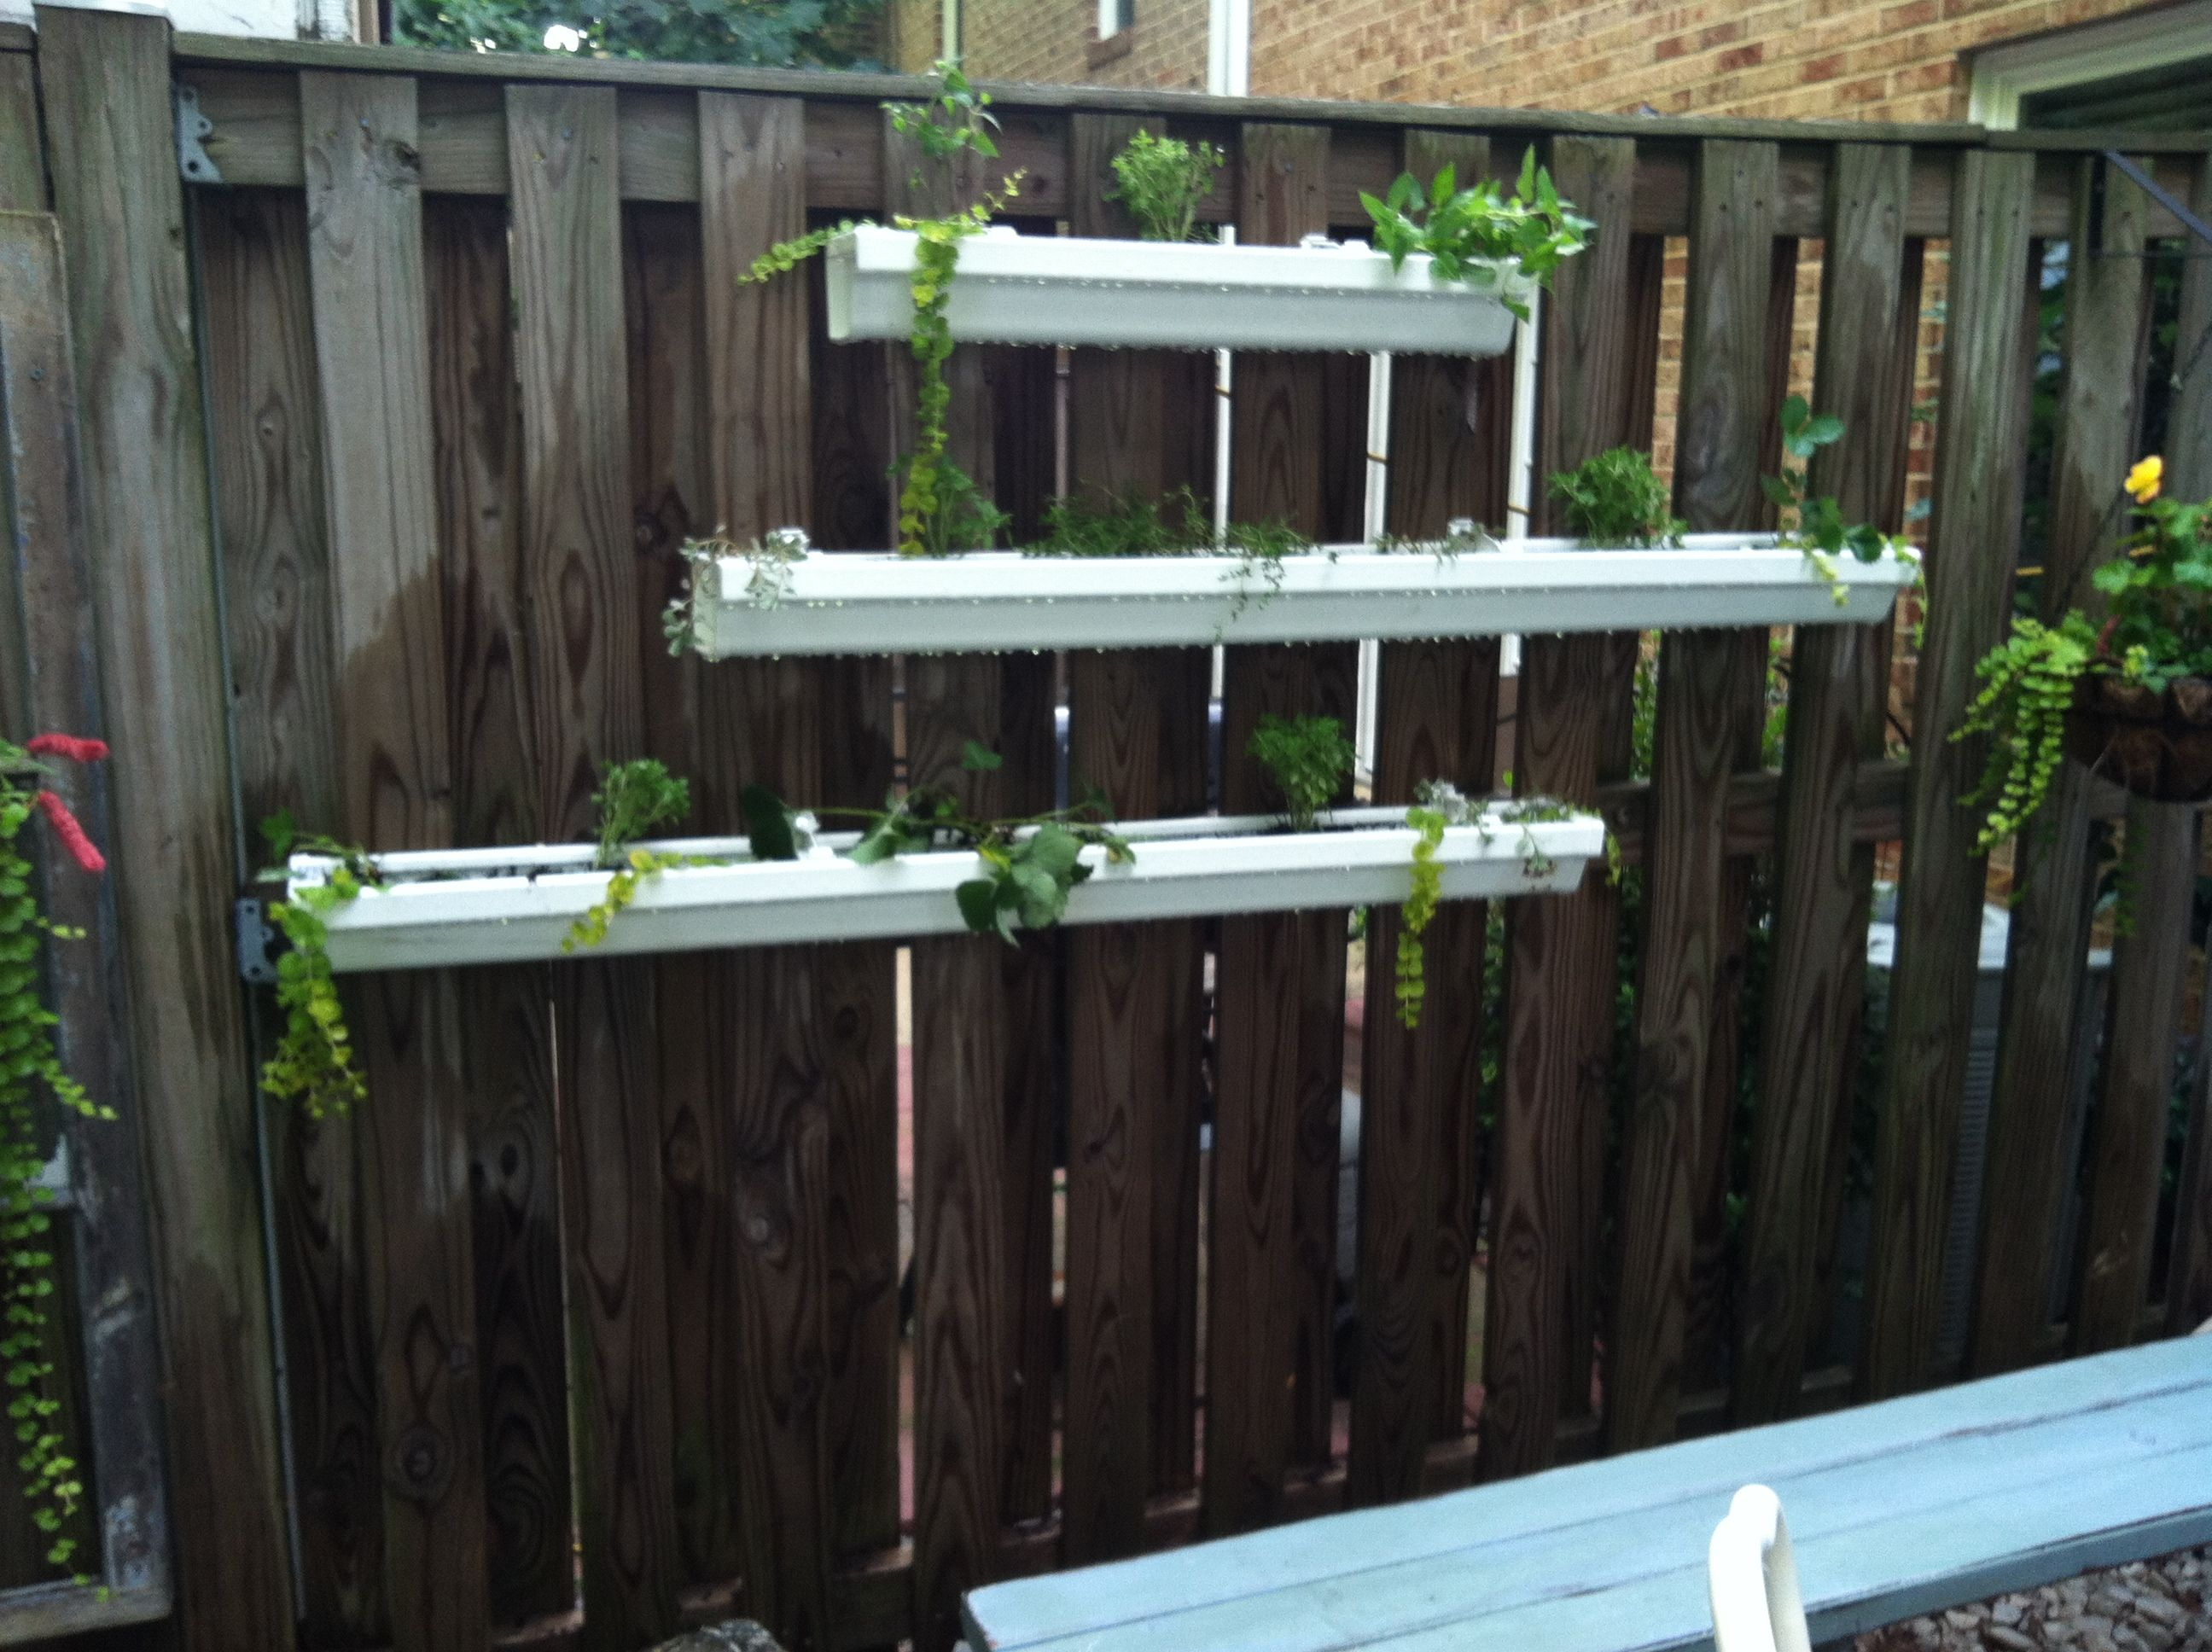 Gutter Garden Vinyl Gutters Capped And Mounted With Gutter Clips Drilled Holes Every 4 Inches On The Bo Gutter Garden Diy Self Watering Planter Rain Gutters